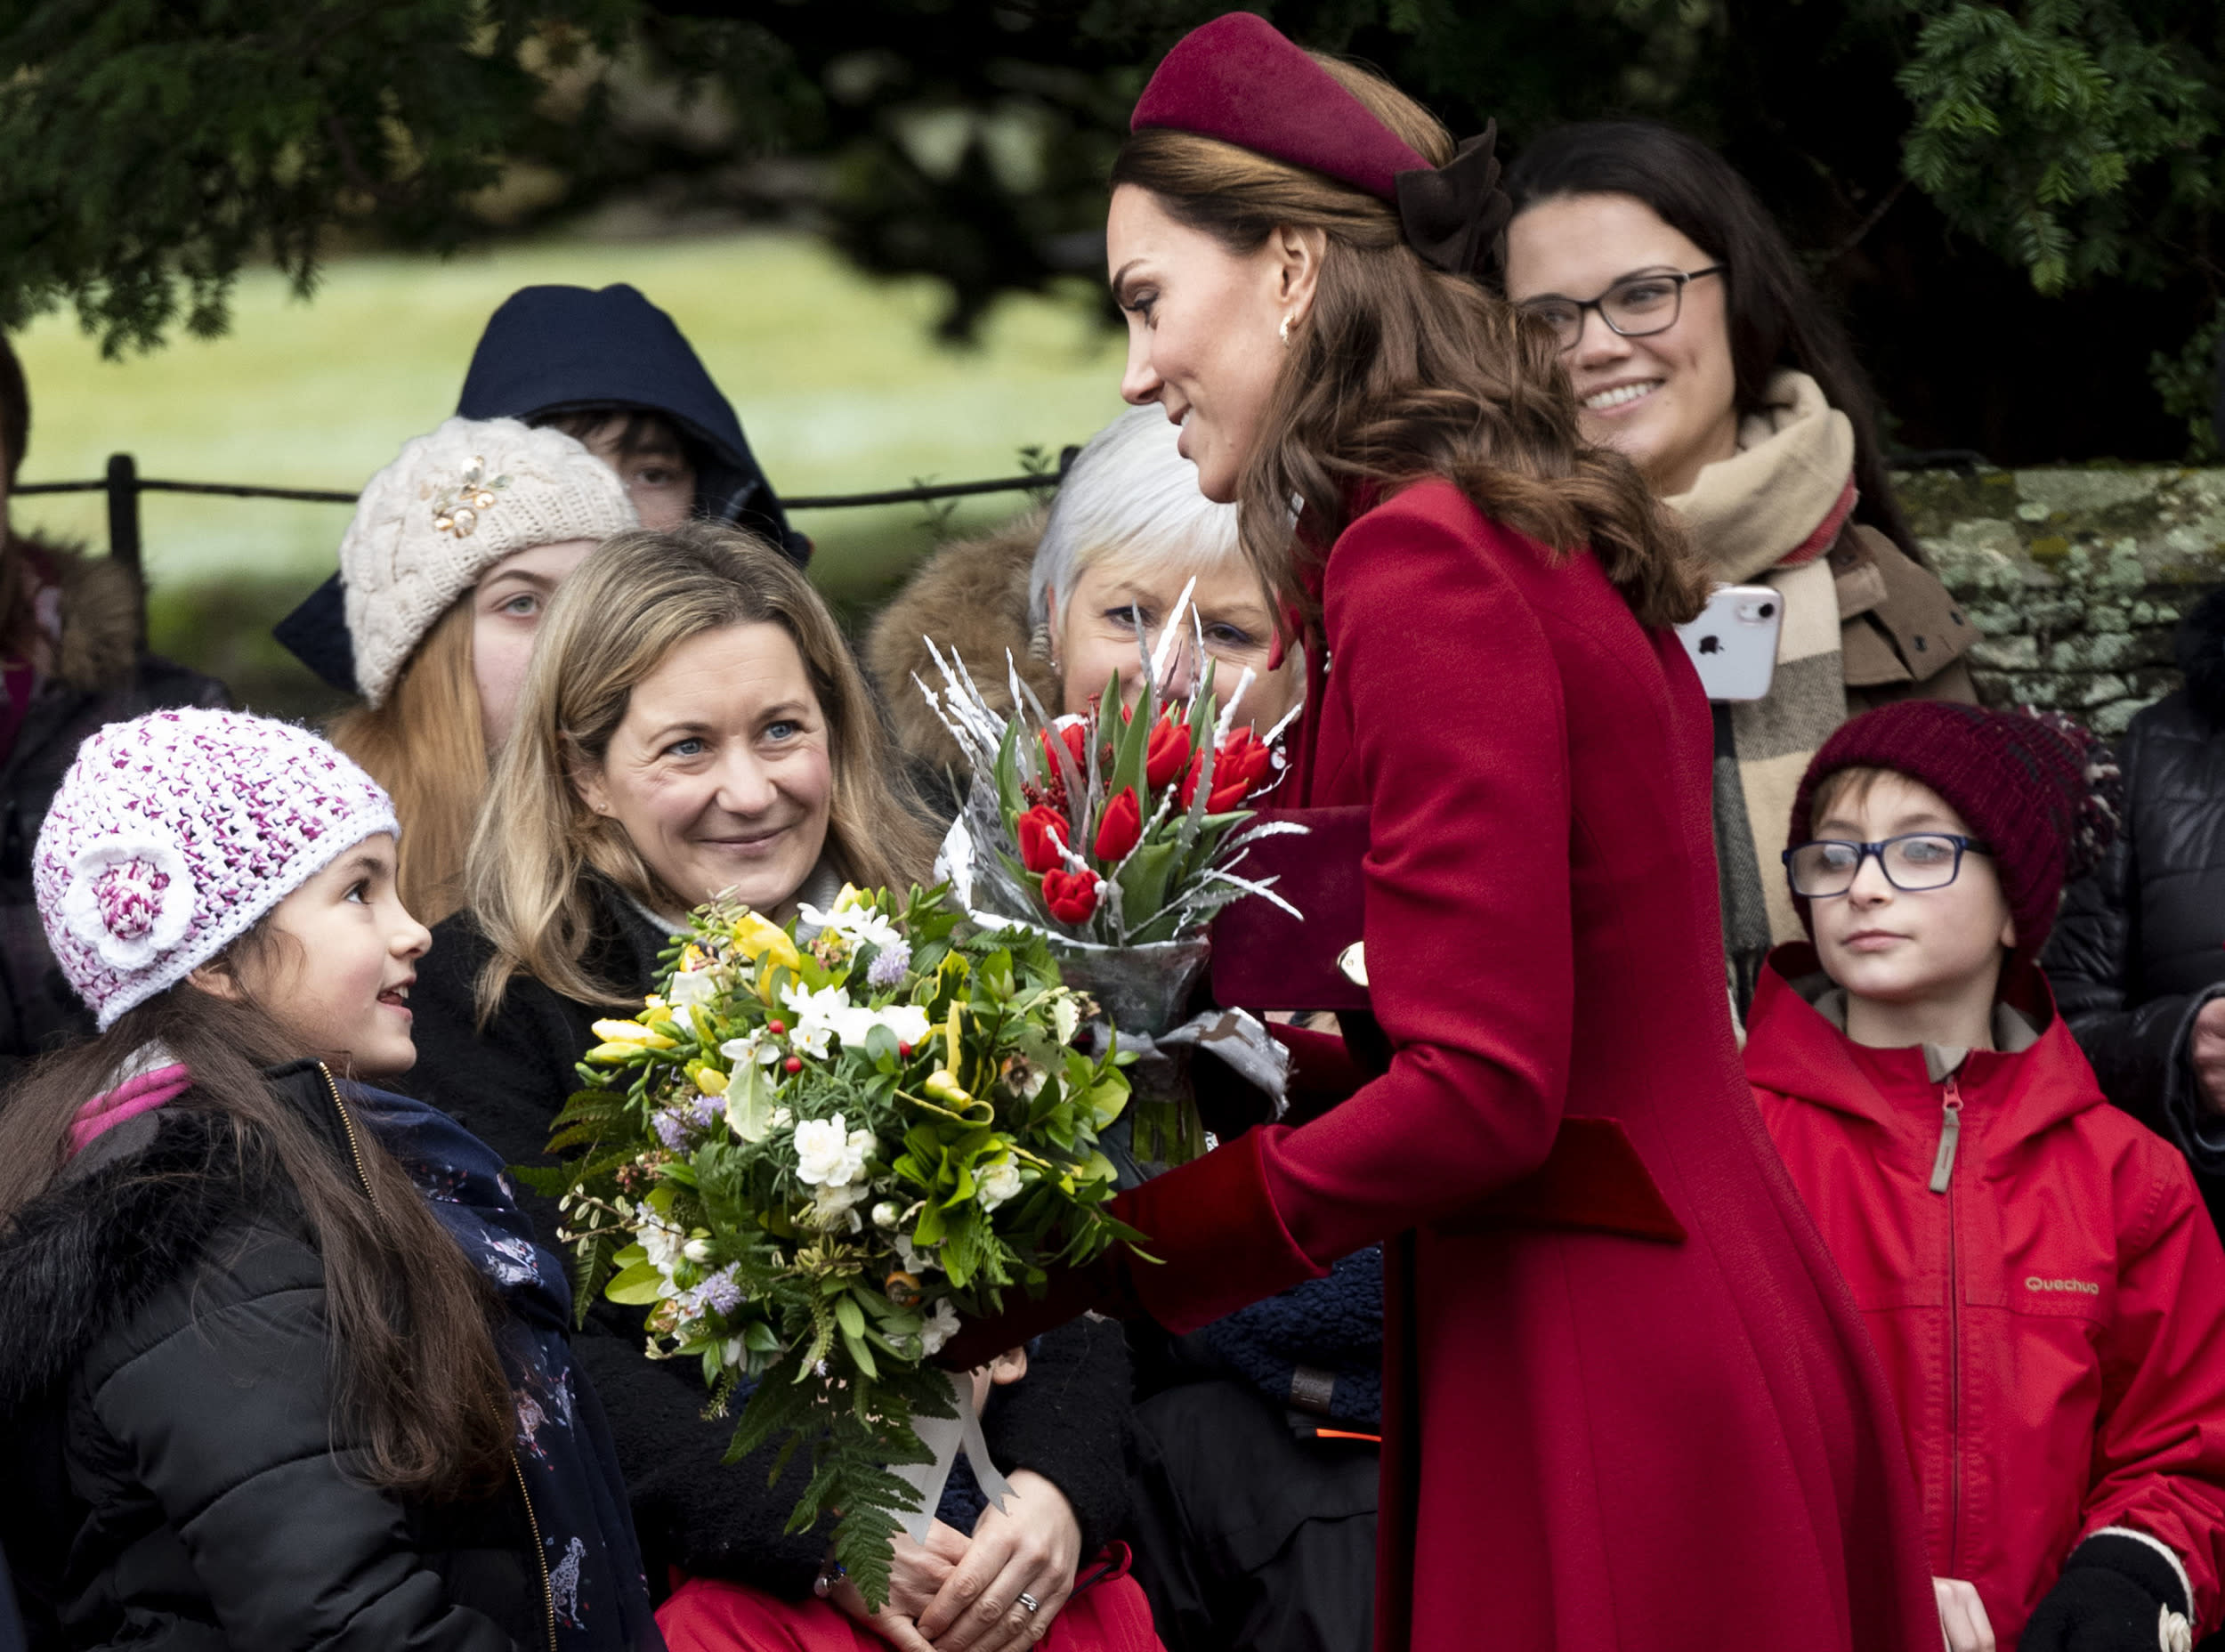 KING'S LYNN, ENGLAND - DECEMBER 25: Catherine, Duchess of Cambridge attends Christmas Day Church service at Church of St Mary Magdalene on the Sandringham estate on December 25, 2018 in King's Lynn, England. (Photo by Mark Cuthbert/UK Press via Getty Images)